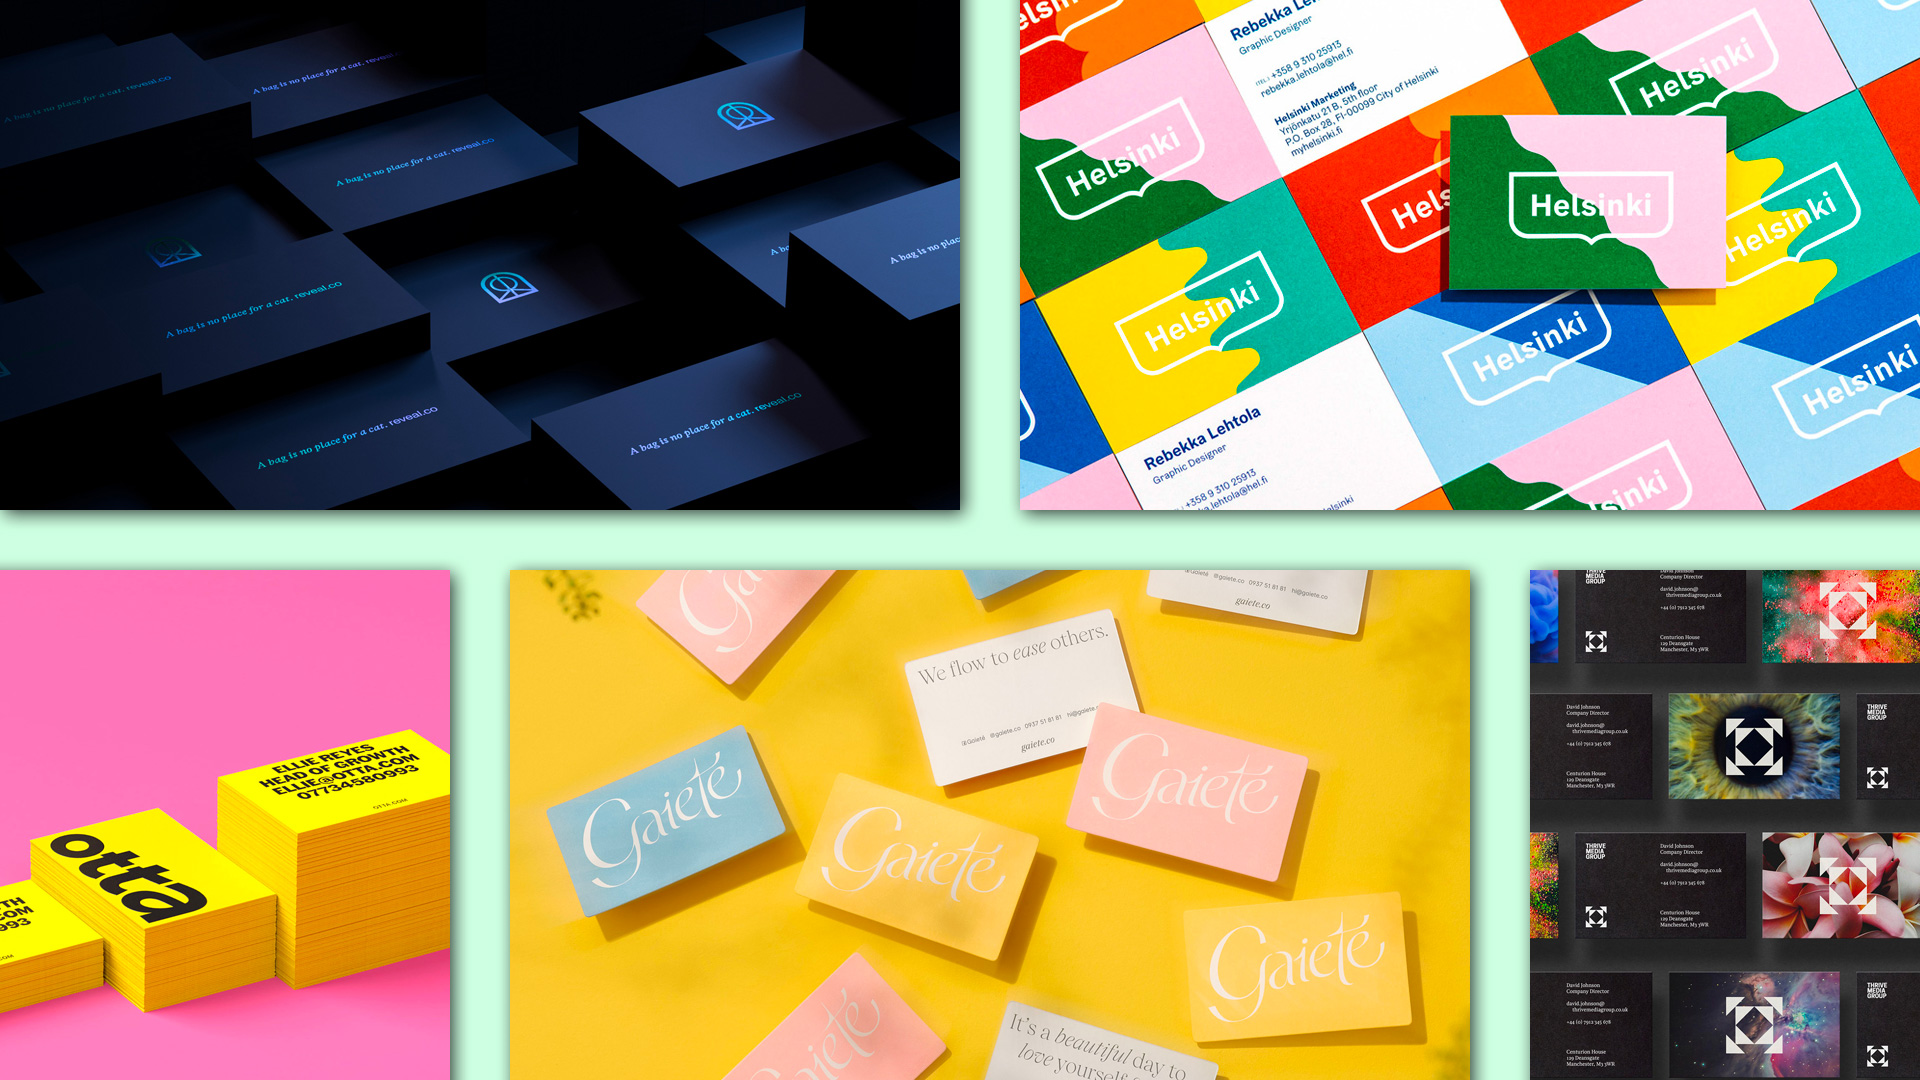 Collected: Business Cards